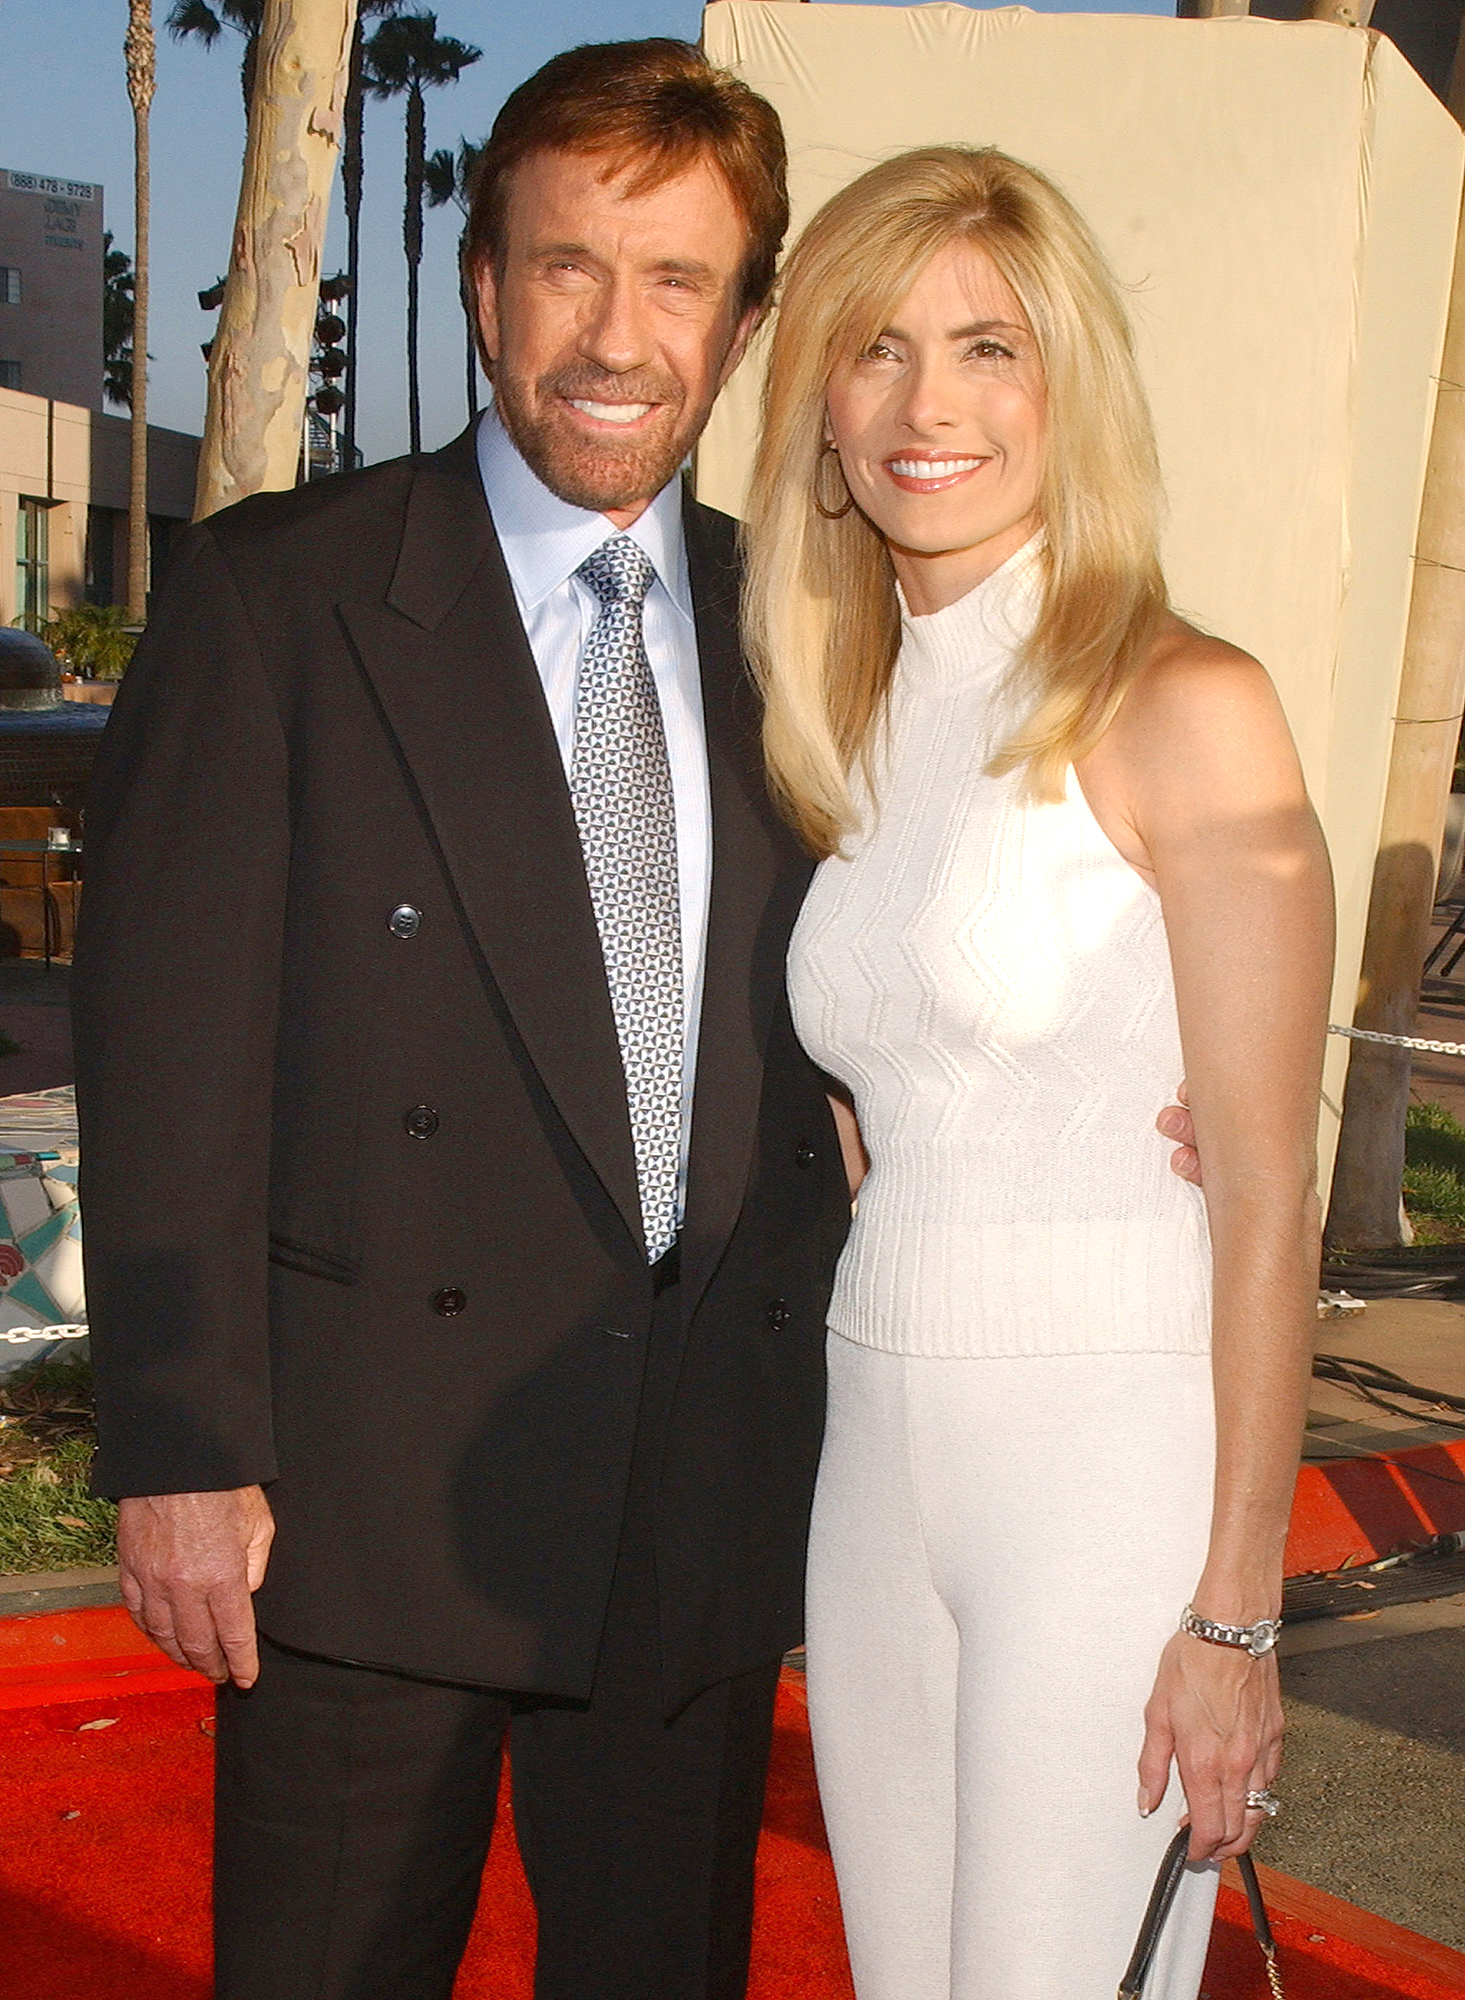 The Academy of Television Arts & Sciences 2004 Hall of Fame Induction Ceremony - Arrivals